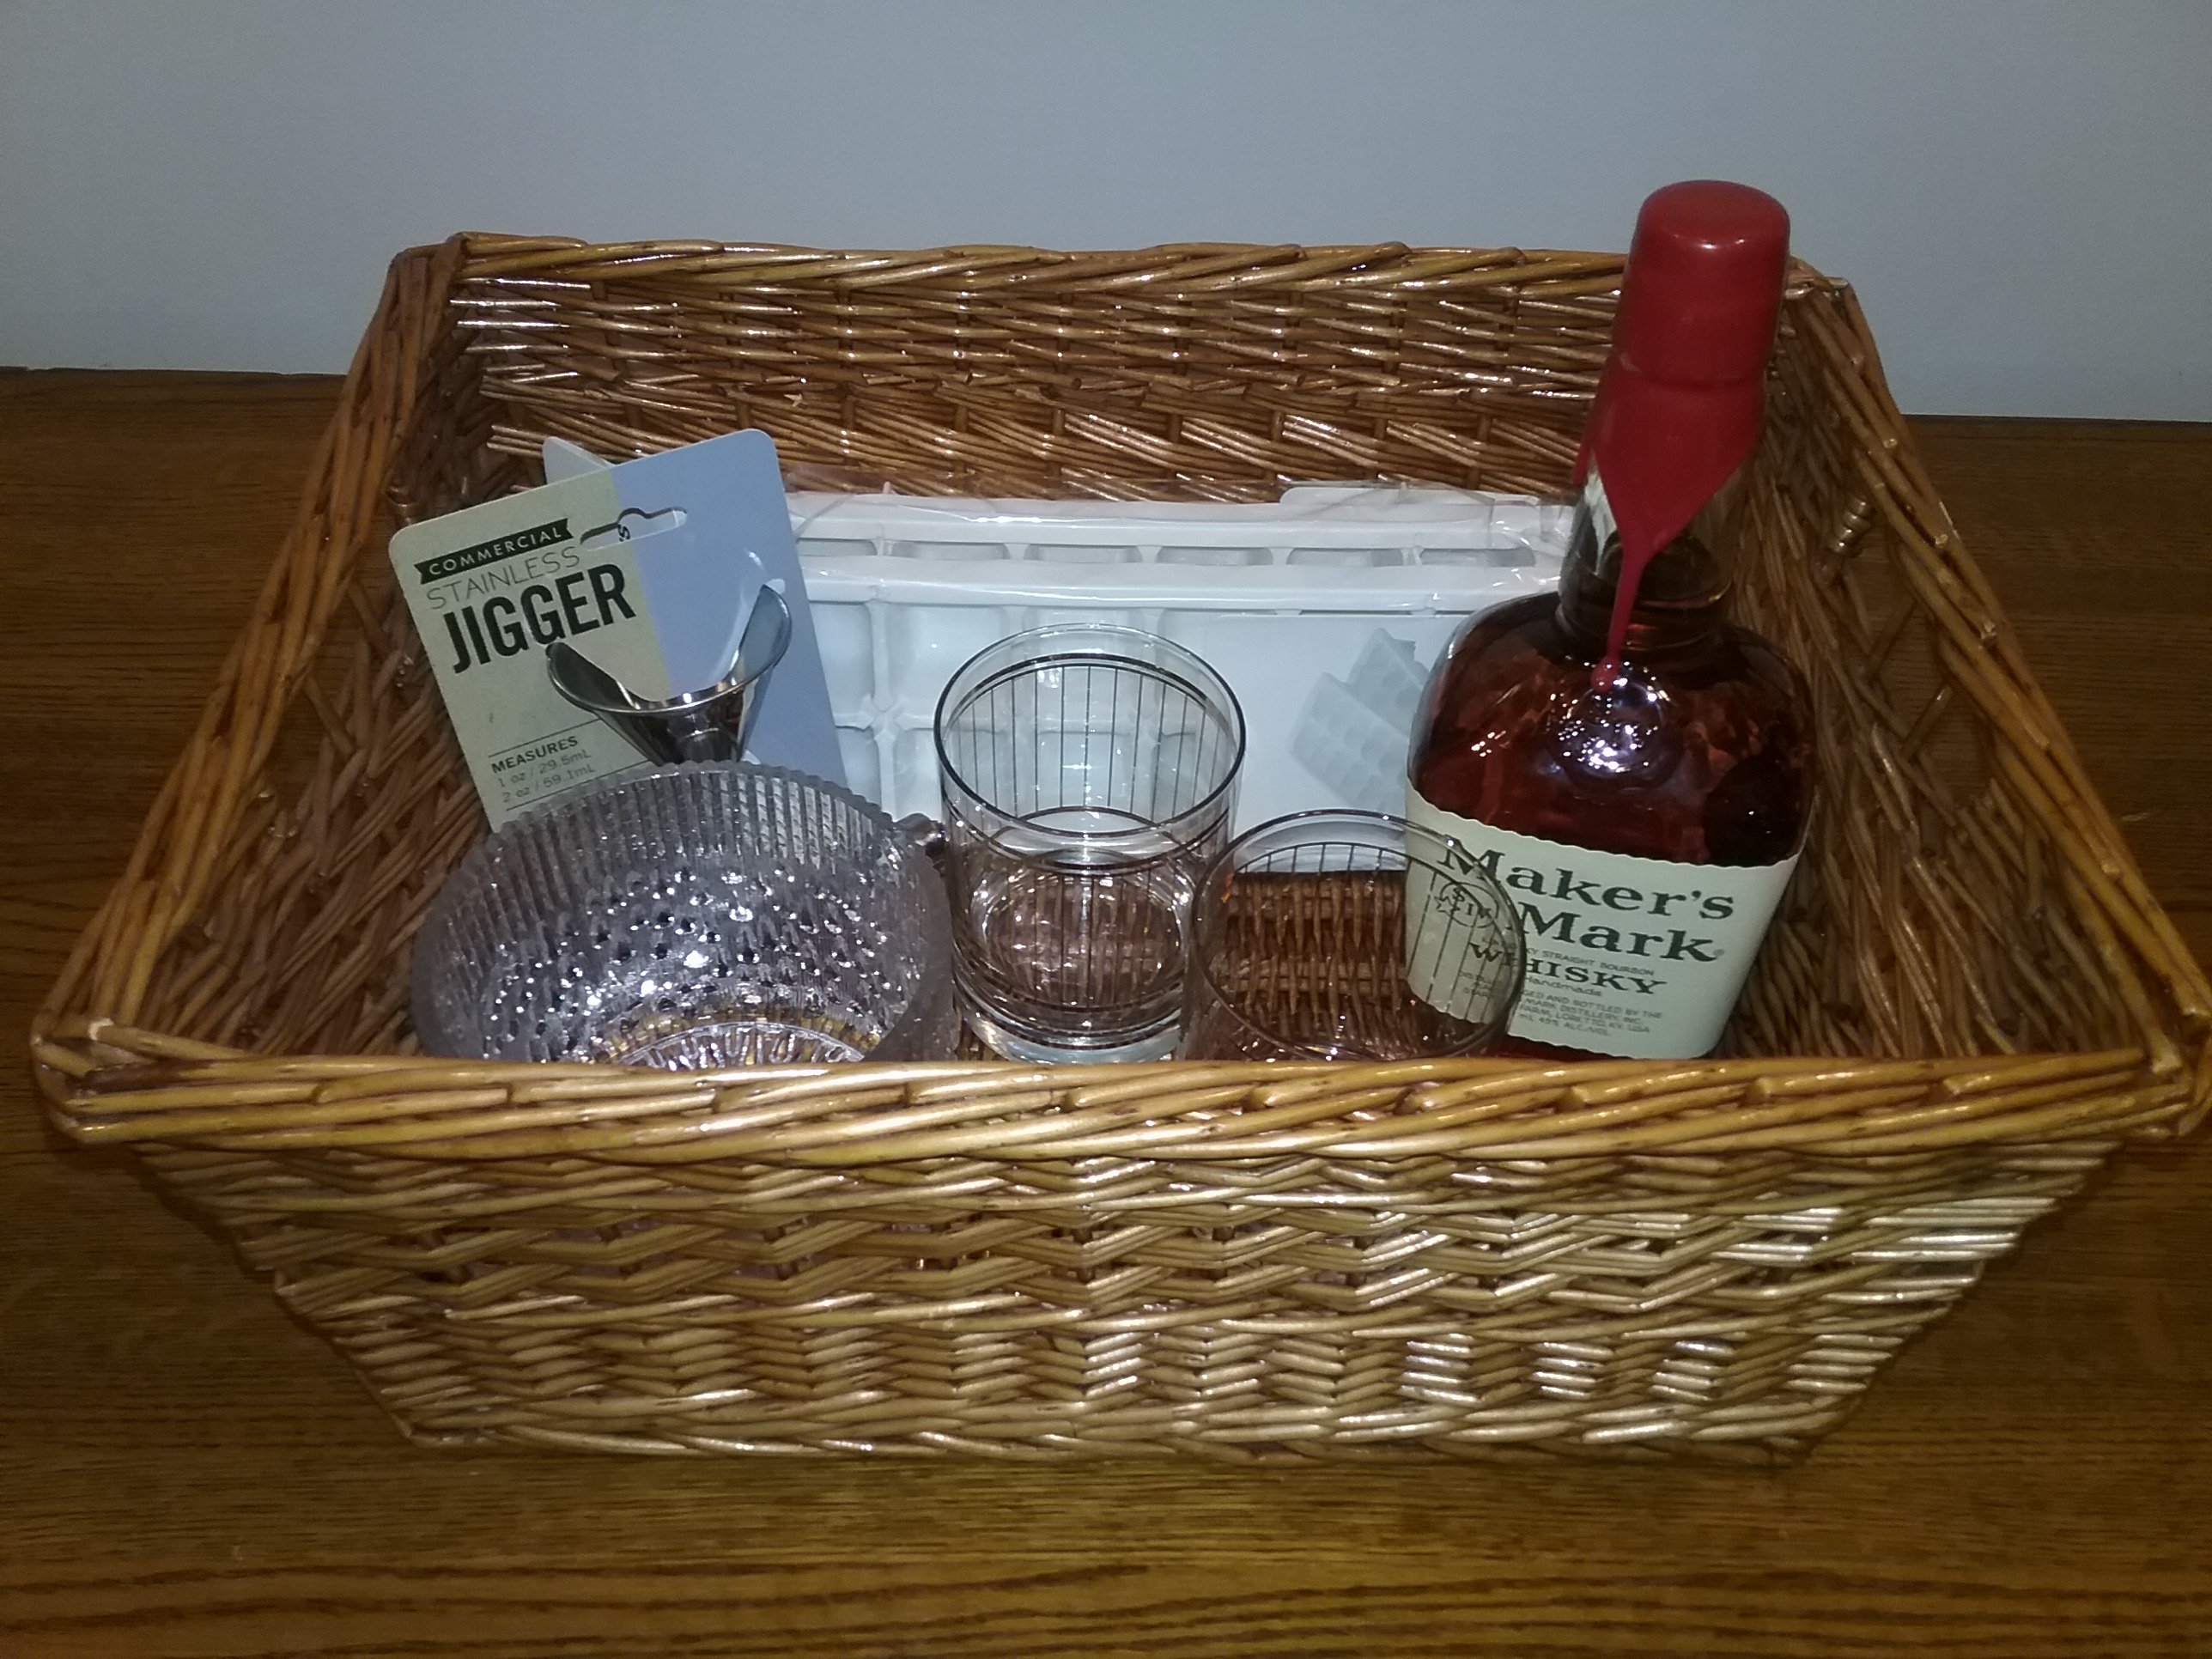 MCHS Silent Auction Item: Basket with 2 vintage Culver rocks glasses and Makers Mark whiskey.